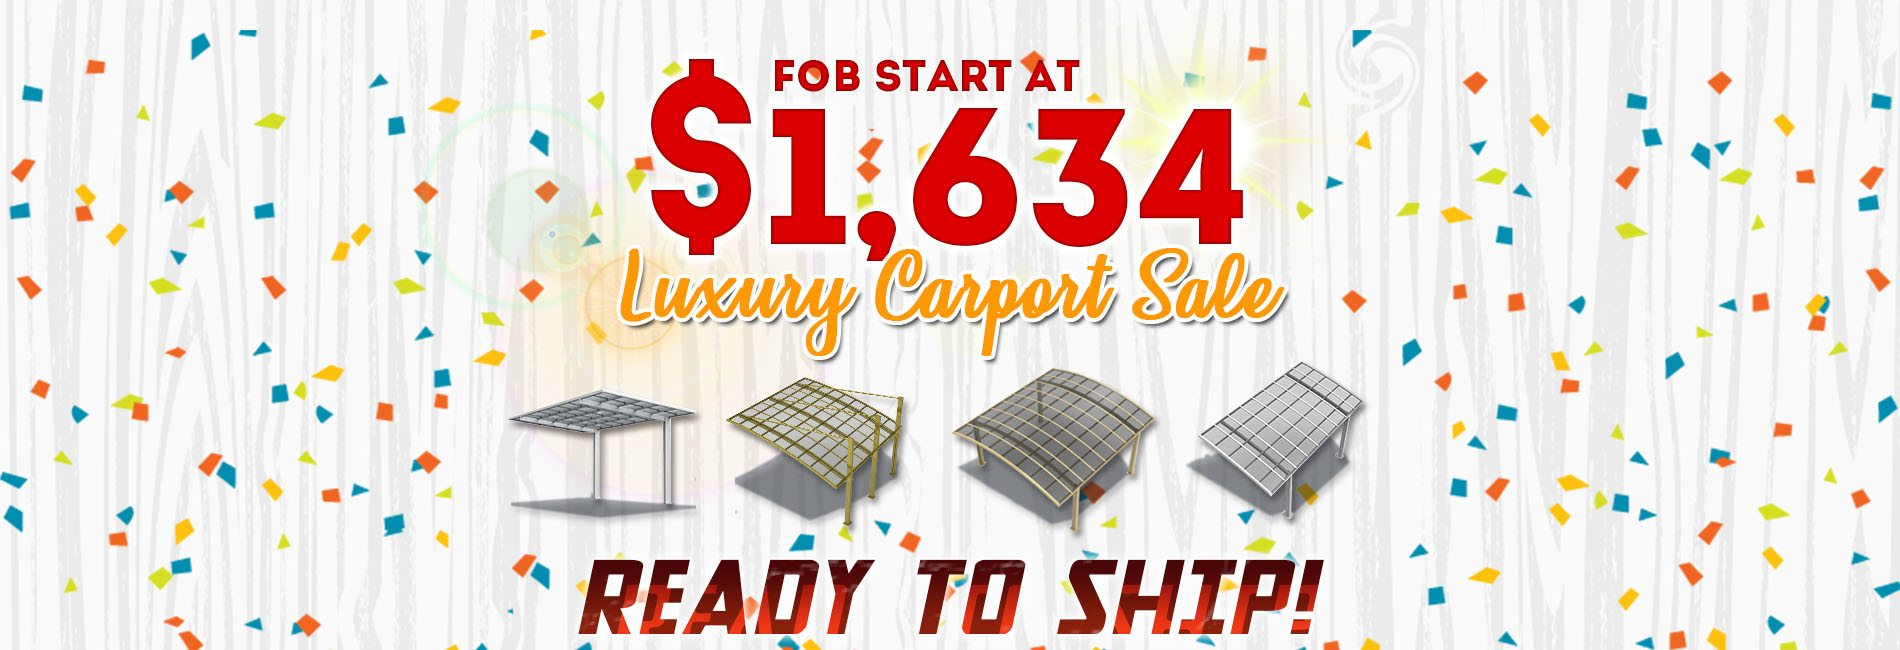 Sunshield Shelter Carport and Patio Cover-In stock and ready to ship bannar